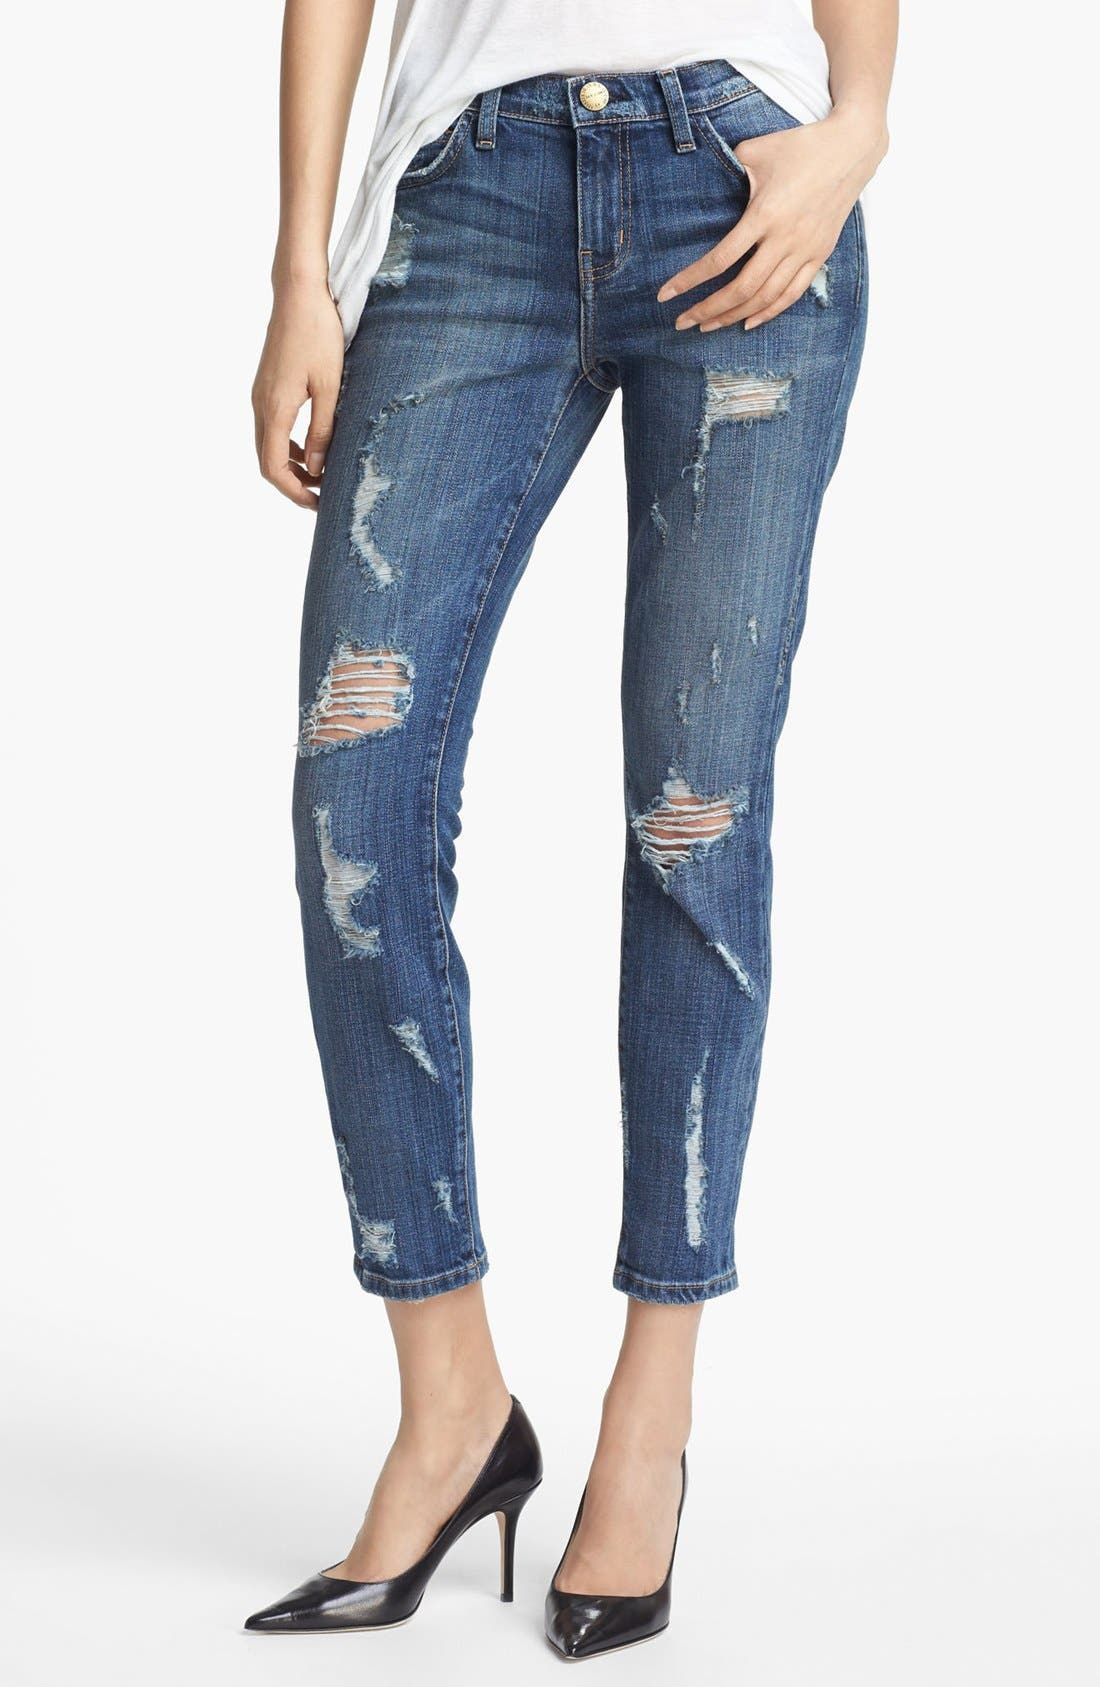 Alternate Image 1 Selected - Current/Elliott 'The Stiletto' Stretch Jeans (Dark Shredded)